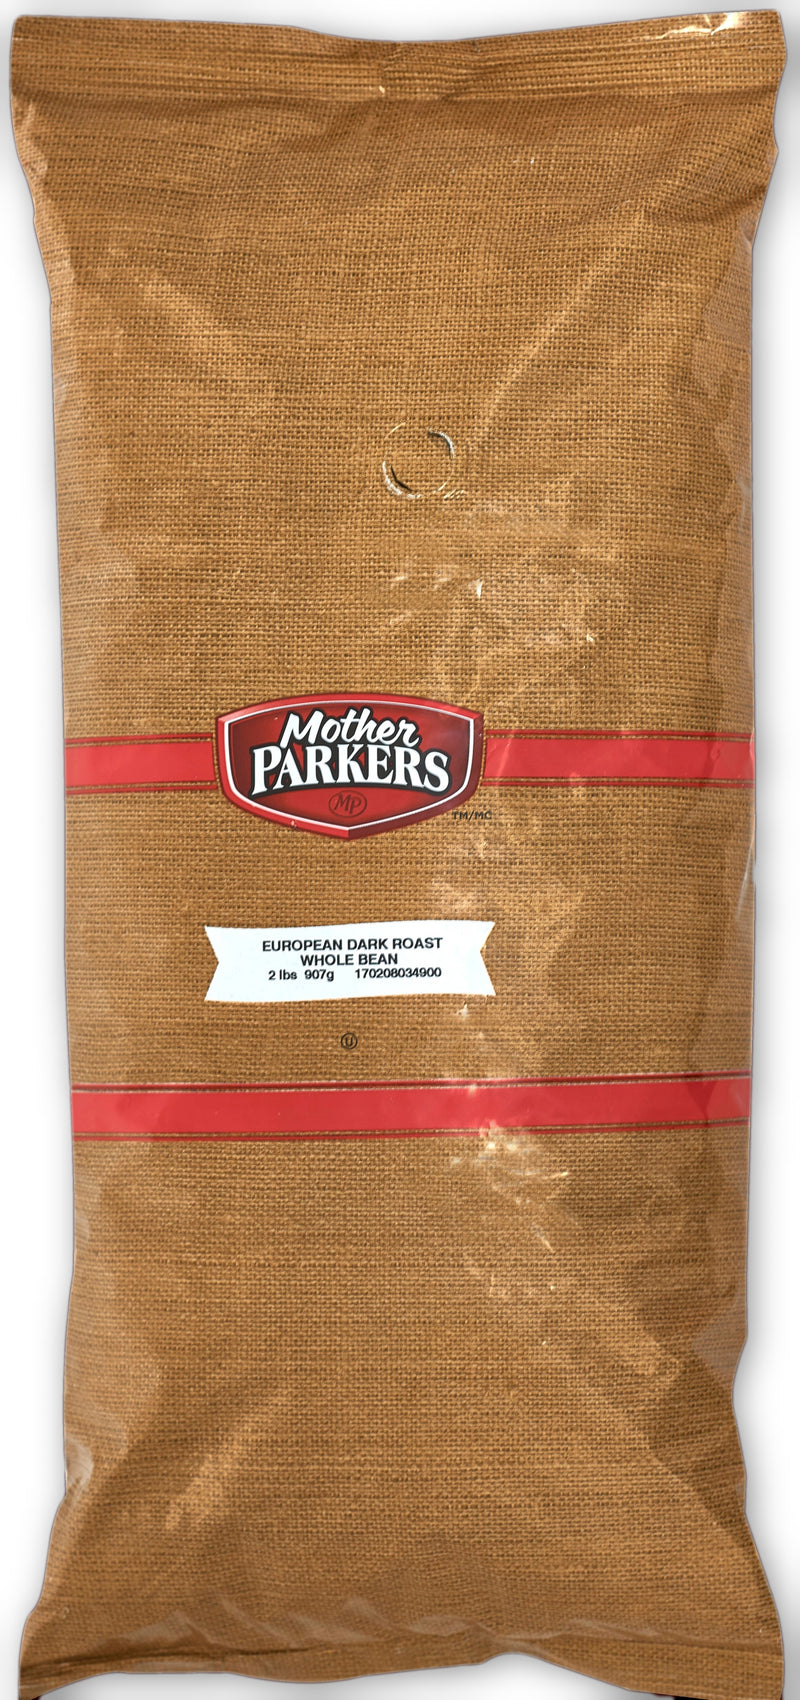 Mother Parkers European Dark Whole Bean 2lbs